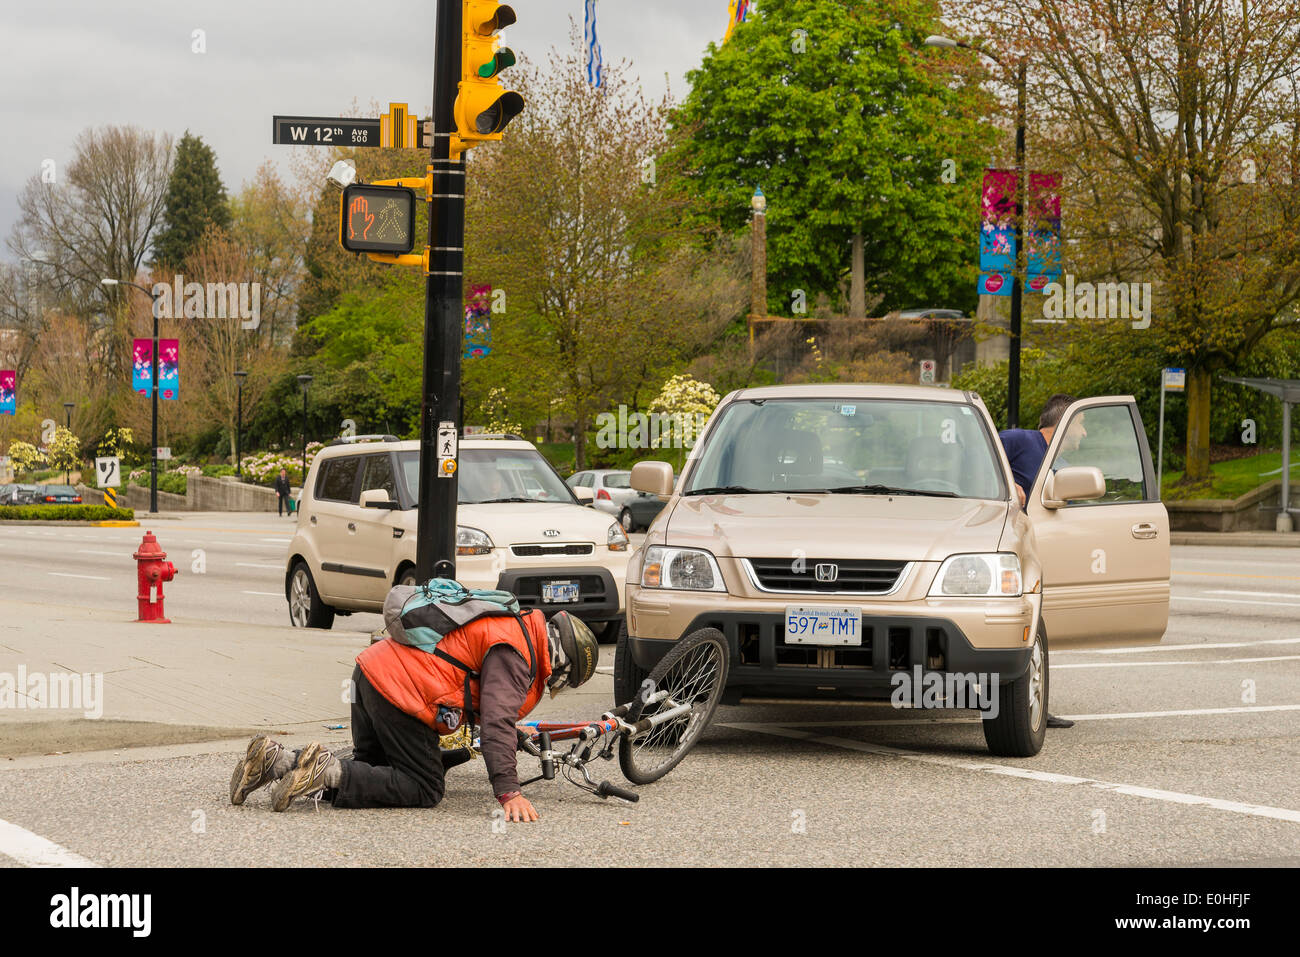 Aftermath of accident in intersection involving a cyclist. Cyclists fall not witnessed. No fault to any party implied. - Stock Image